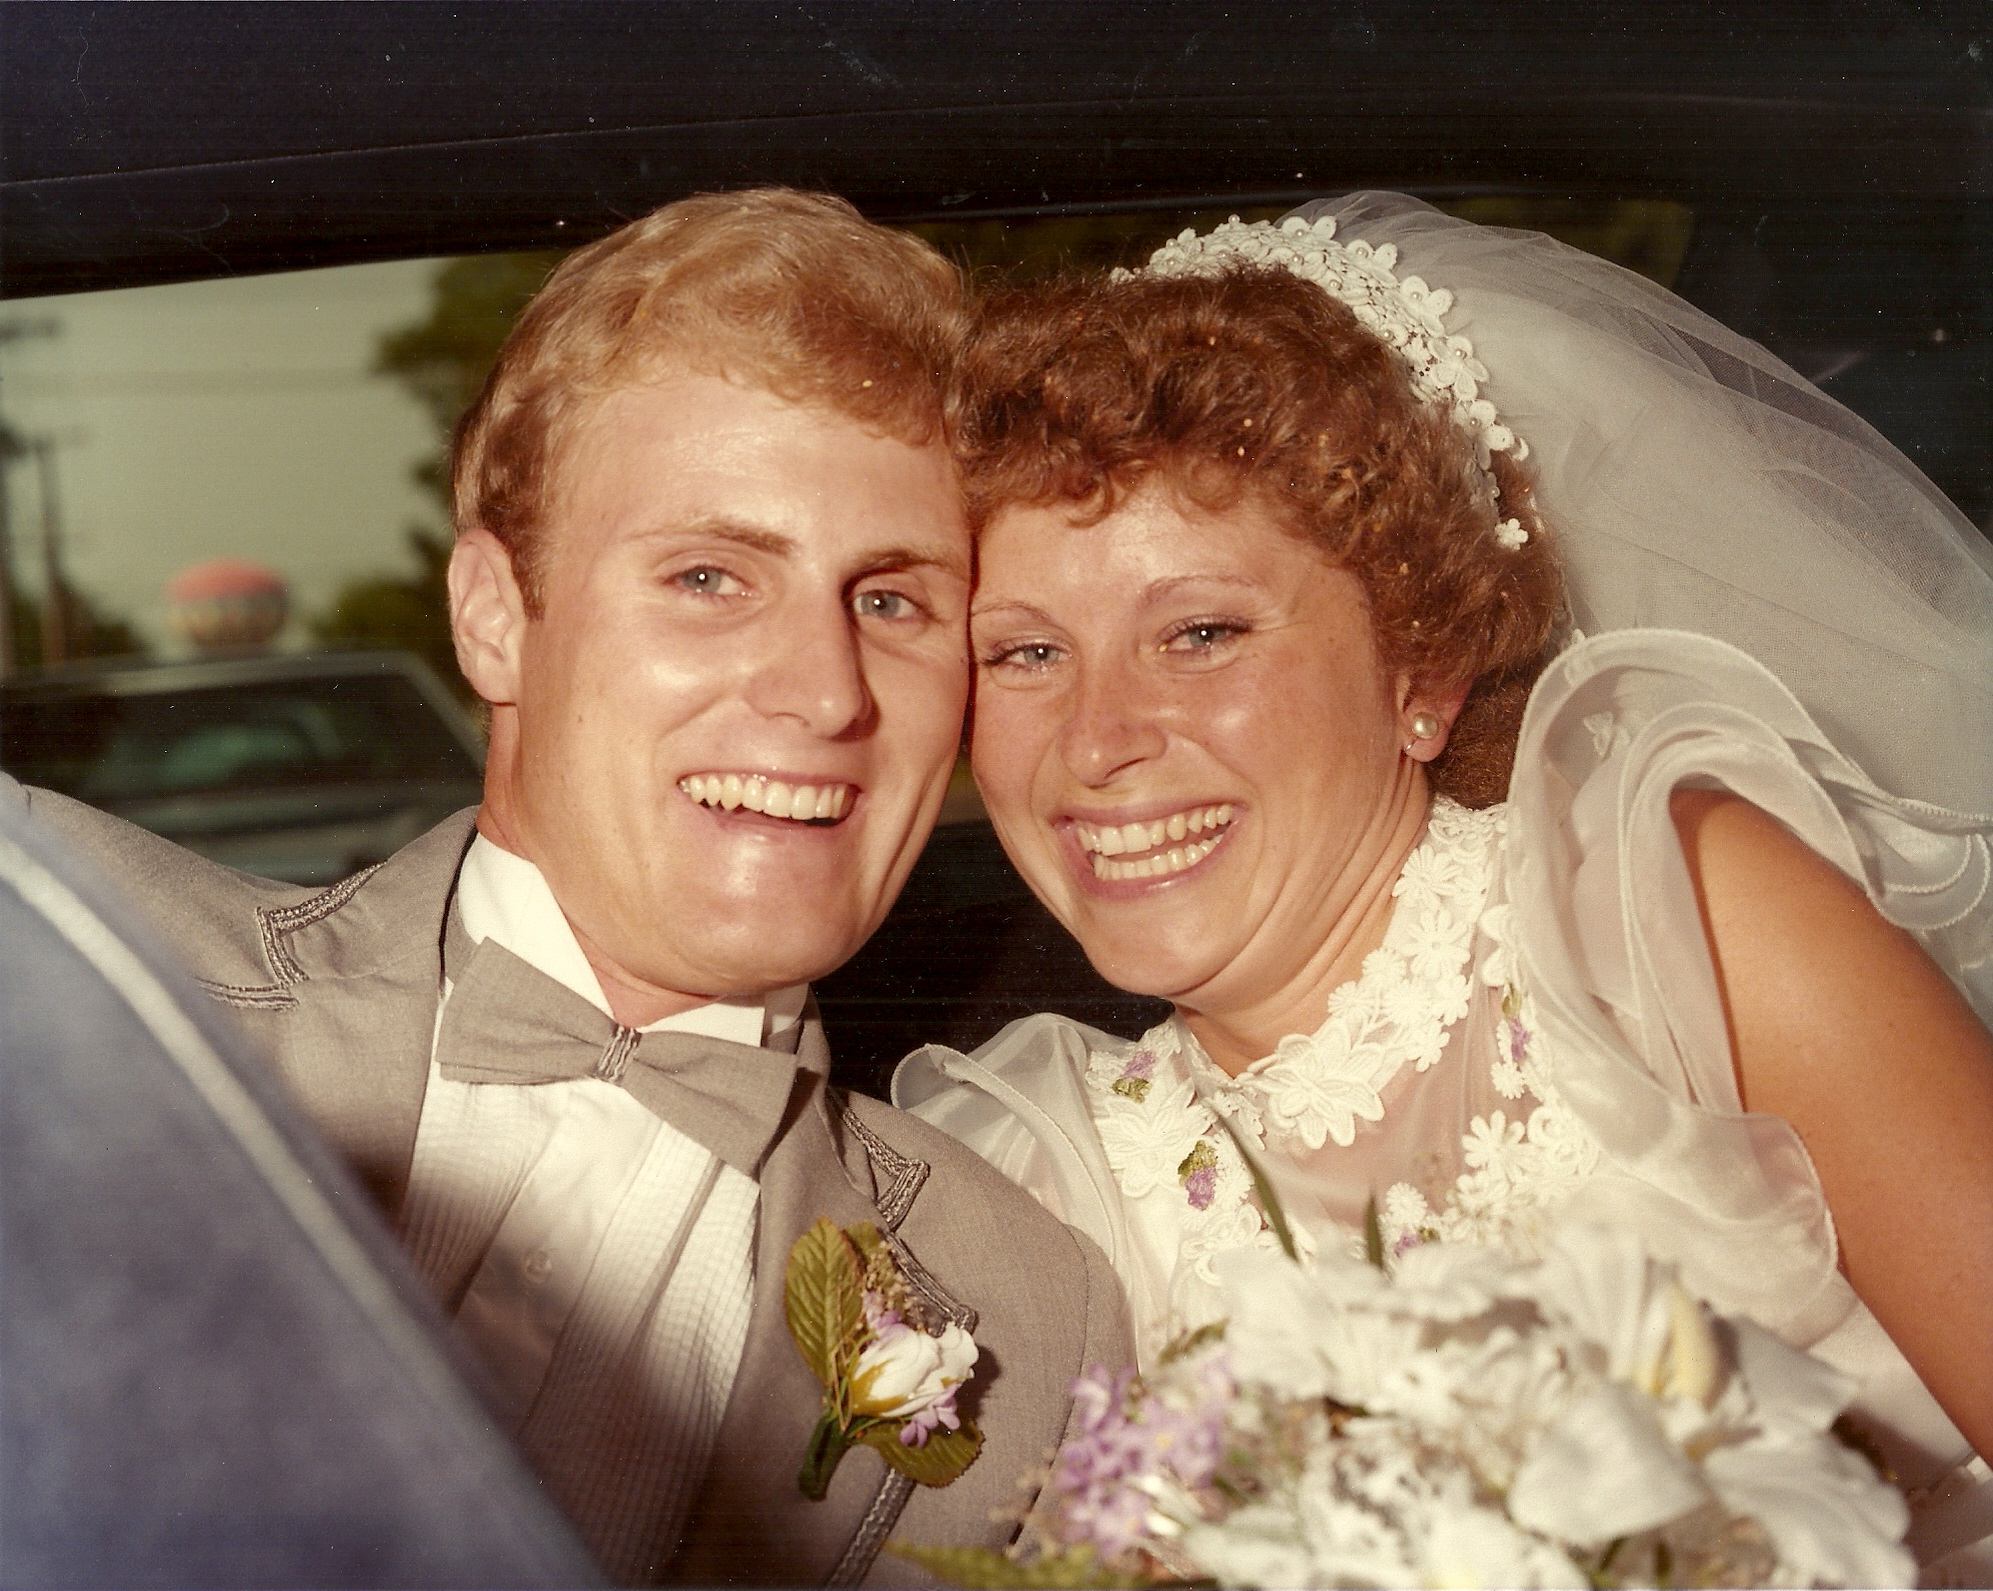 "Jerry + Janet Scanlan - Wedding Date: August 27, 1983Jerry is the 2nd oldest of 8 children + grew up in rural Ohio. Janet is the youngest of 3, also a Midwesterner, calling Peoria, IL home.Jerry + Janet met at the University of Notre Dame, the first day of their senior year. When he proposed, Jerry quoted Victor Frankl, from Man's Search for Meaning, ""The salvation of man is through love and in love."" When they got married, the mantra was: the wedding is a day, but the marriage is a lifetime. For them, the day wasn't the destination, it was the door. Janet recalls her wedding day saying,"